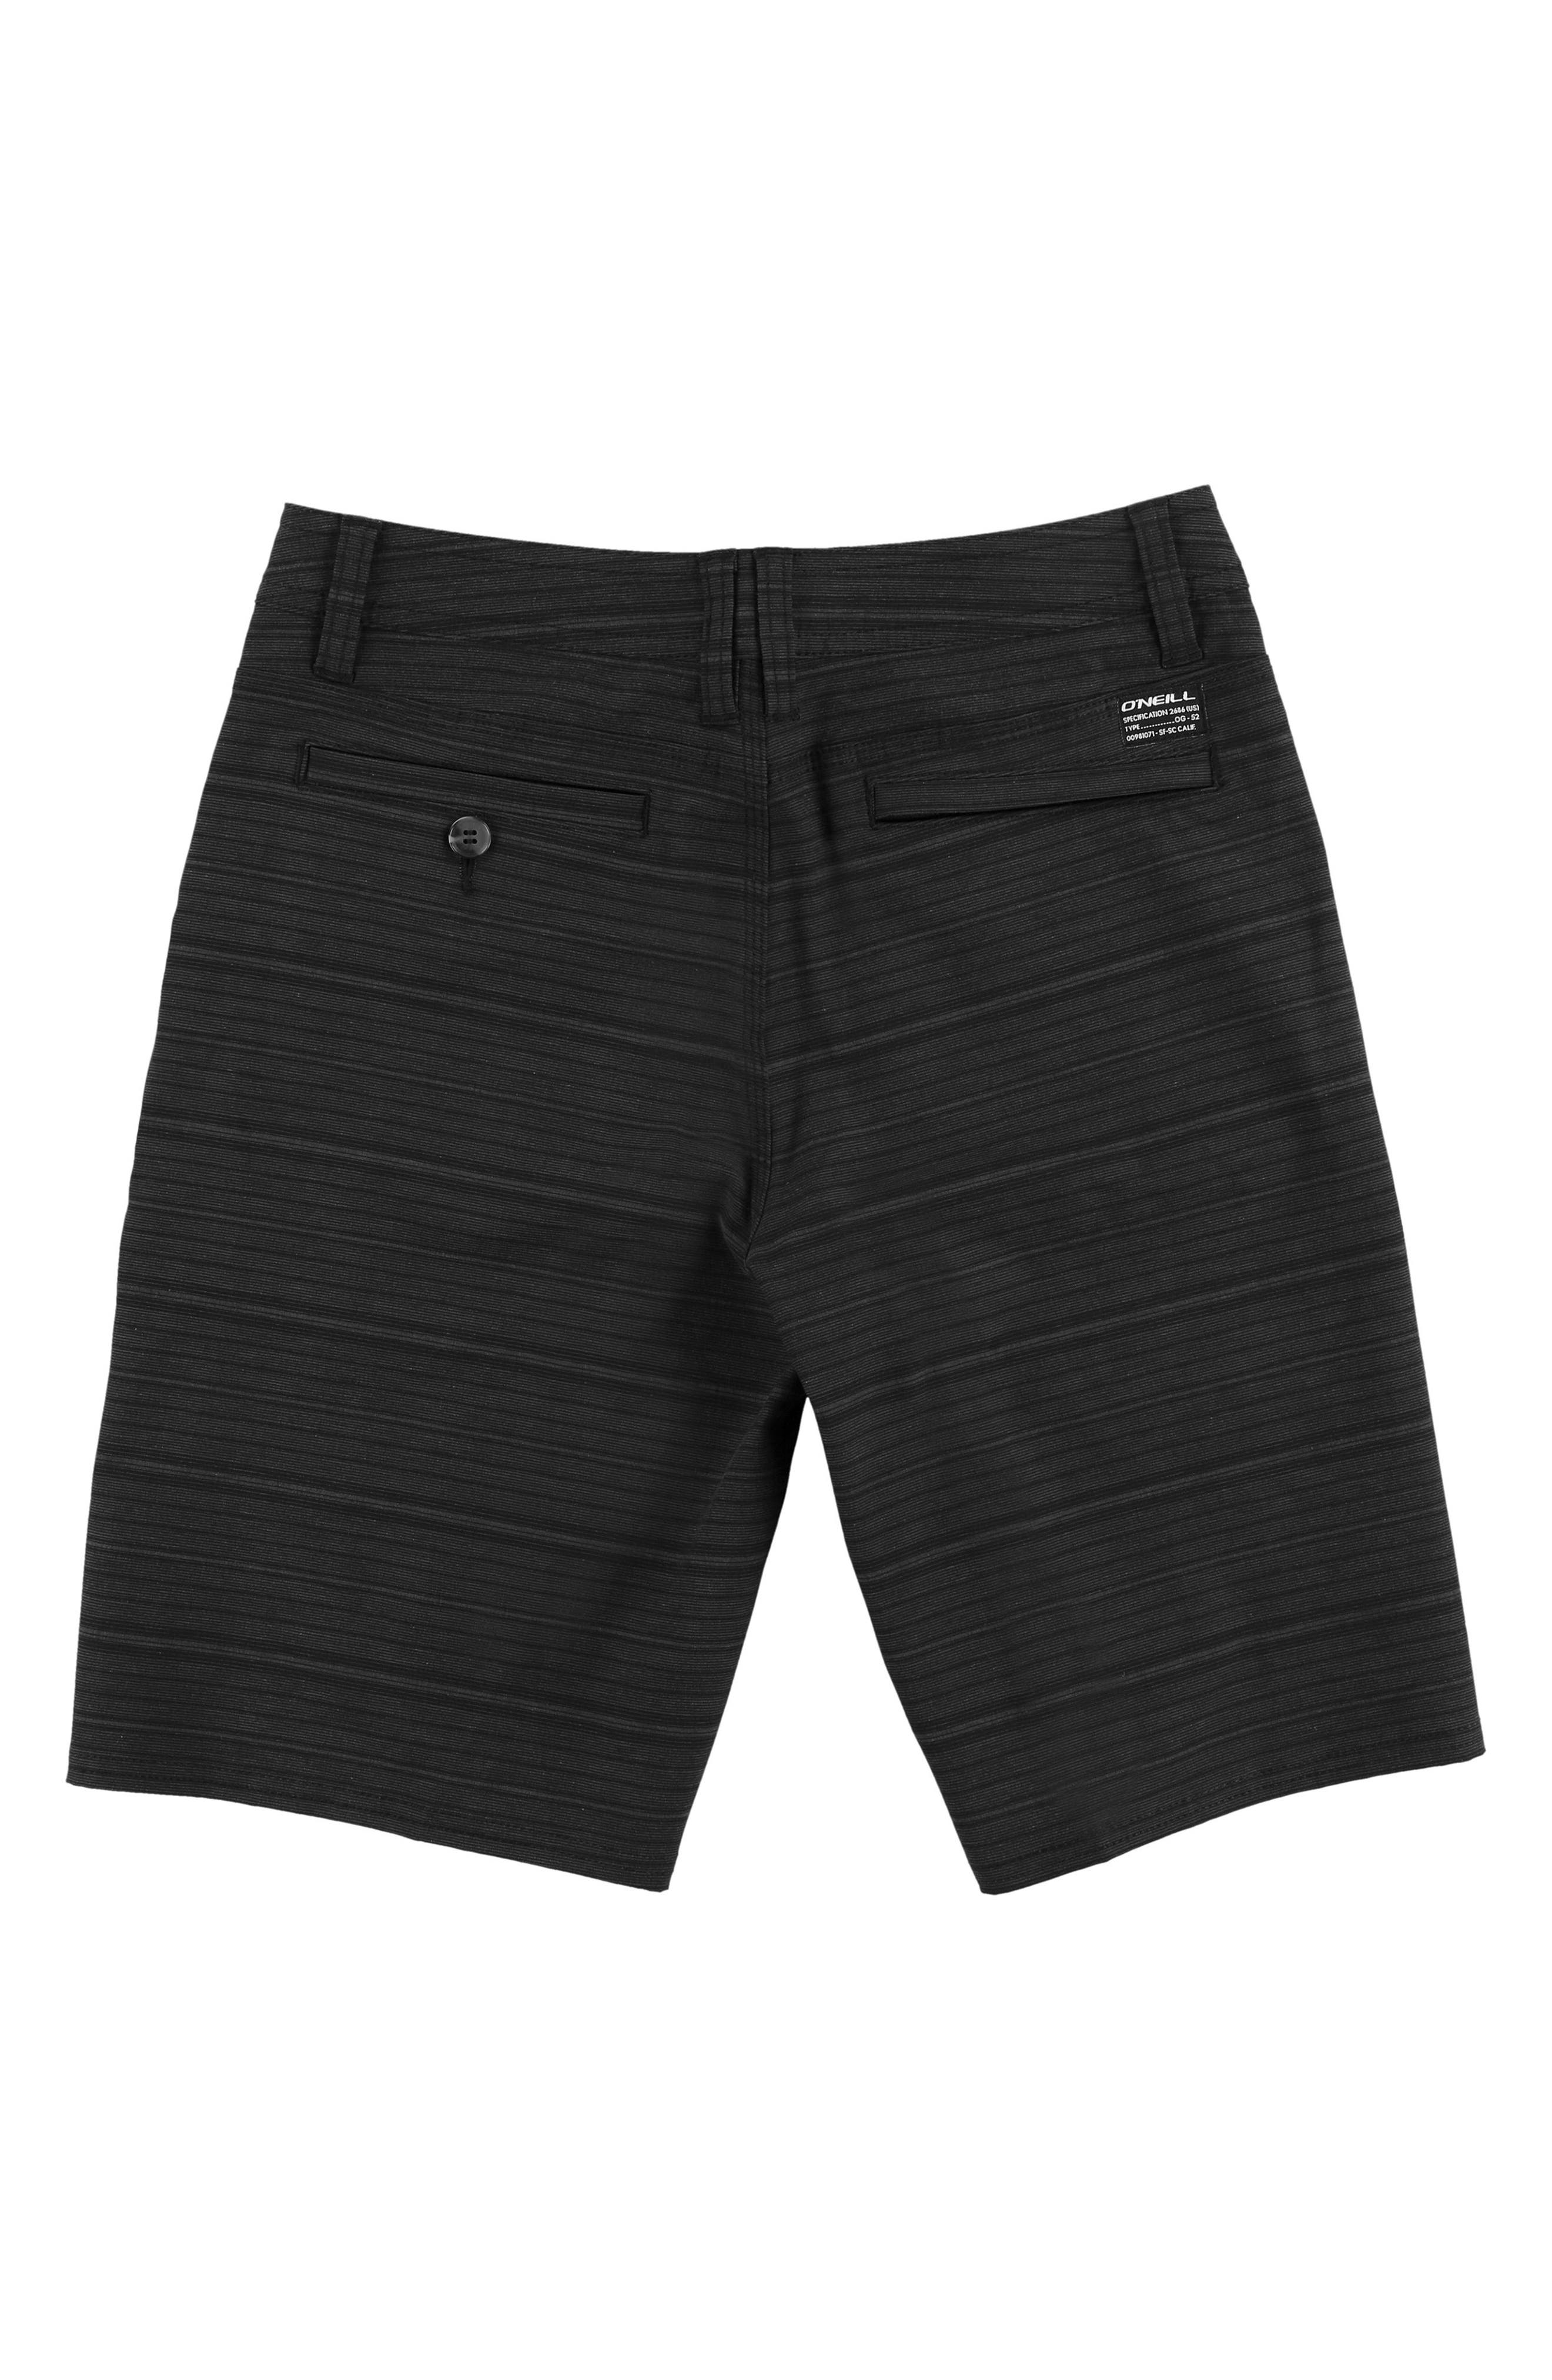 Locked Stripe Hybrid Shorts,                             Alternate thumbnail 2, color,                             ASPHALT